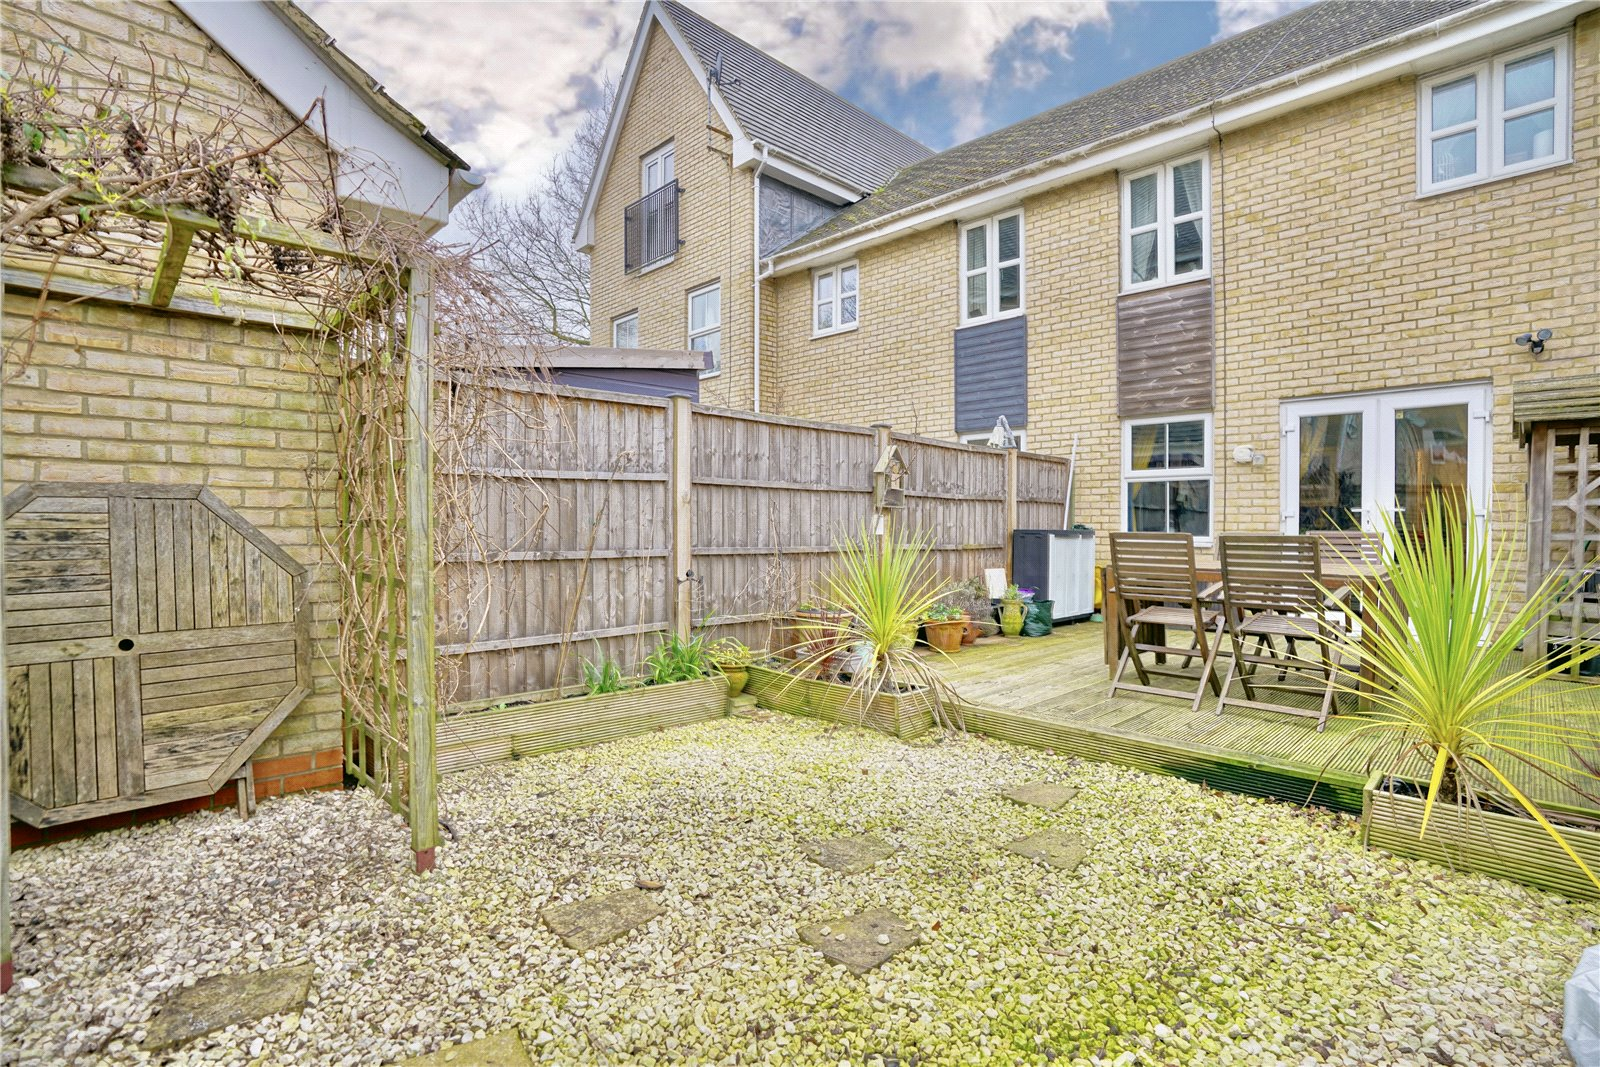 3 bed house for sale in Linton Close, Eaton Socon  - Property Image 7